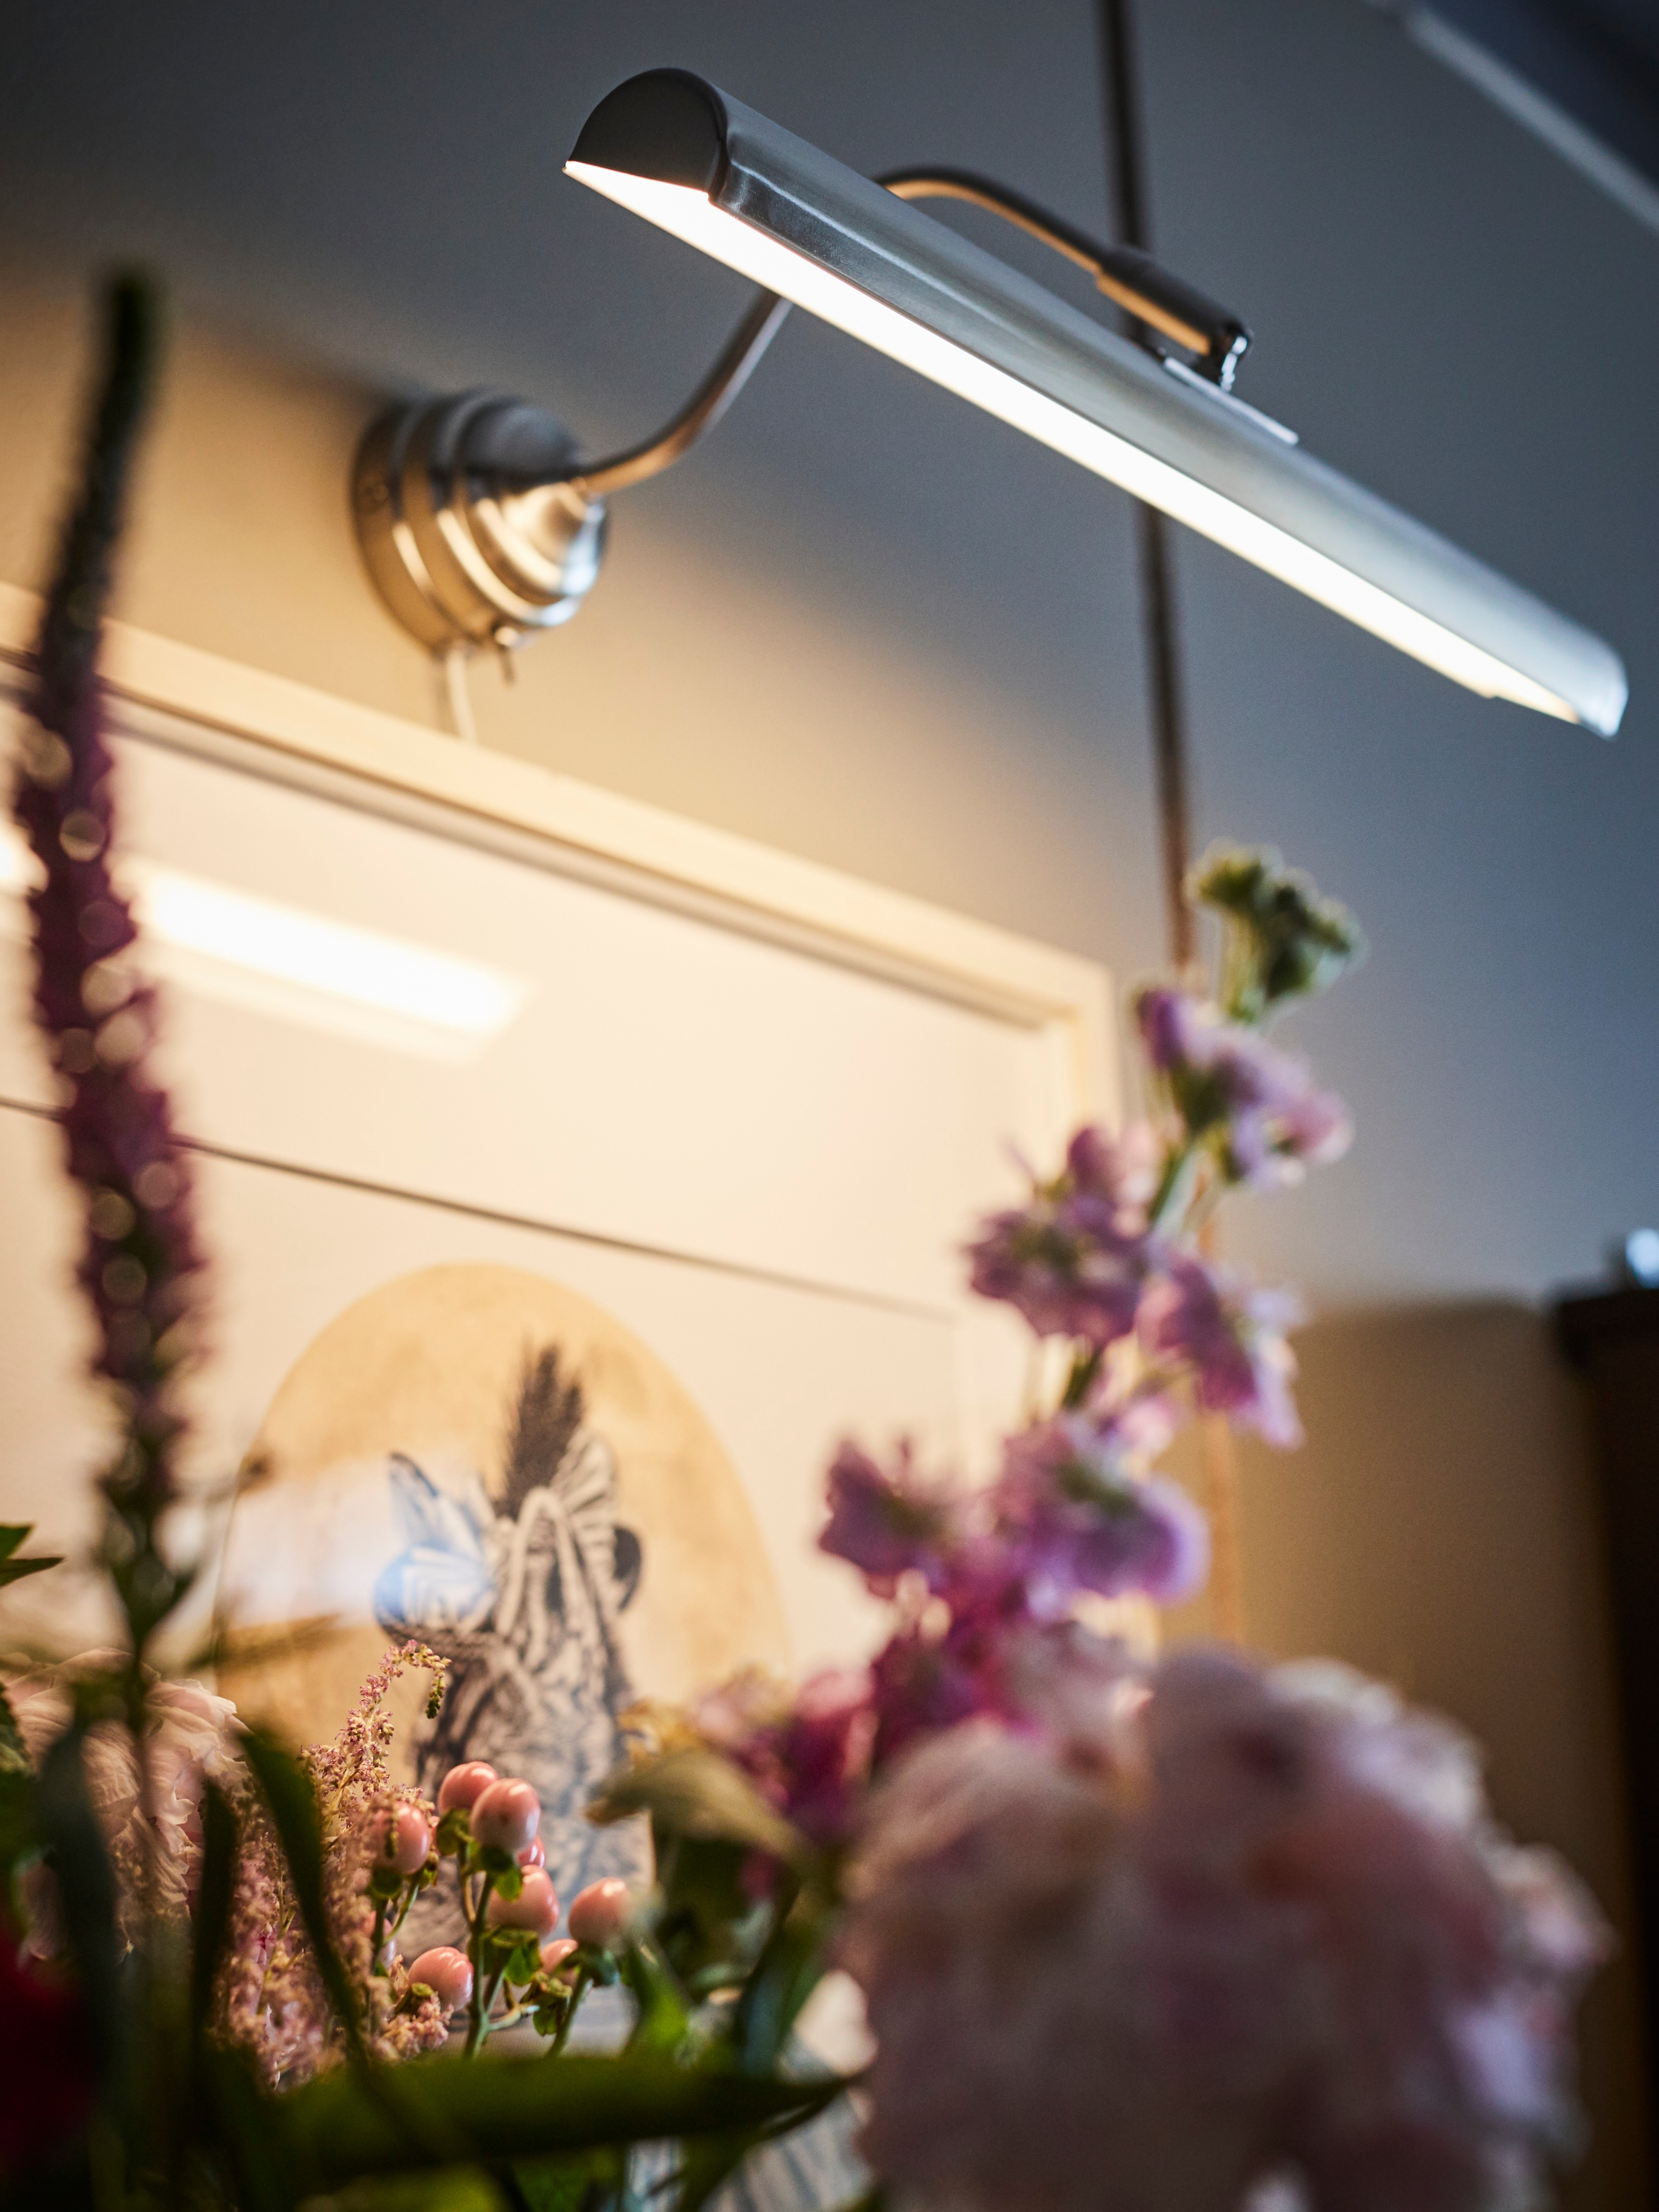 A nickel-plated ÅRSTID LED picture lighting is horizontal on a wall above a framed artwork. Flowers are in the foreground.